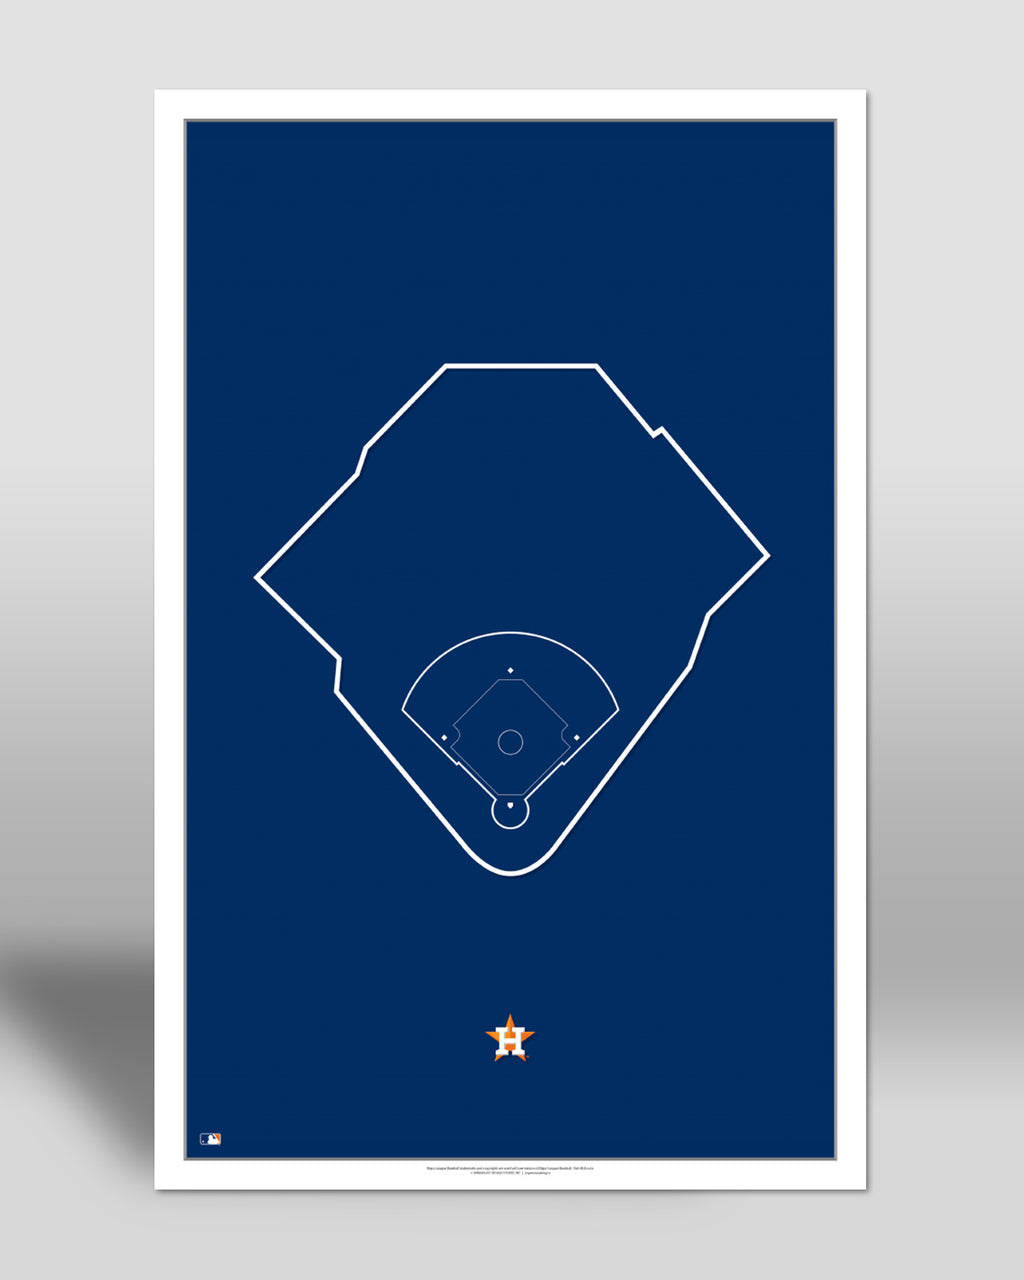 MLB Outline Ballpark - Minute Maid Park Houston Astros - S Preston